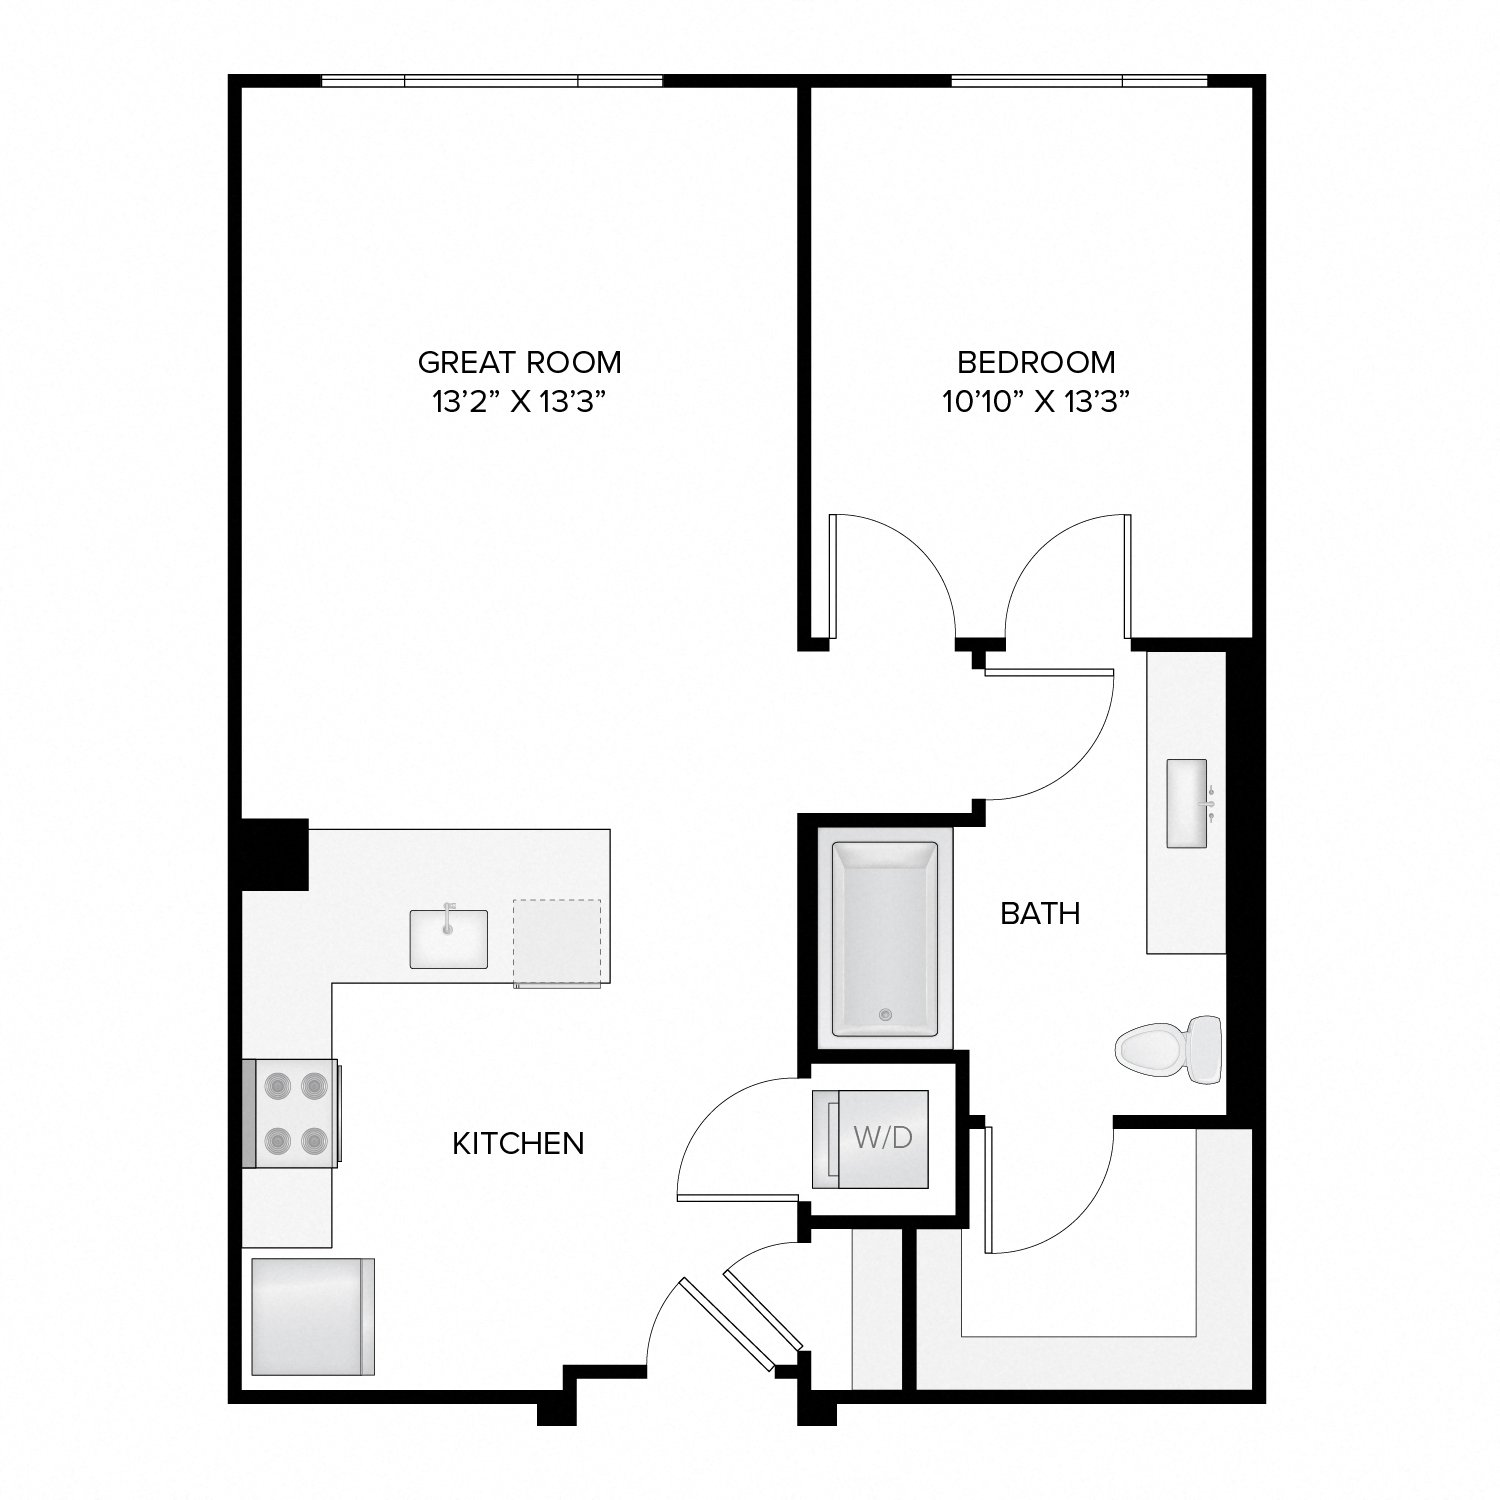 Diagram of the Jefferson floor plan. One bedroom, one bathroom, an open kitchen and living area, and a washer dryer.